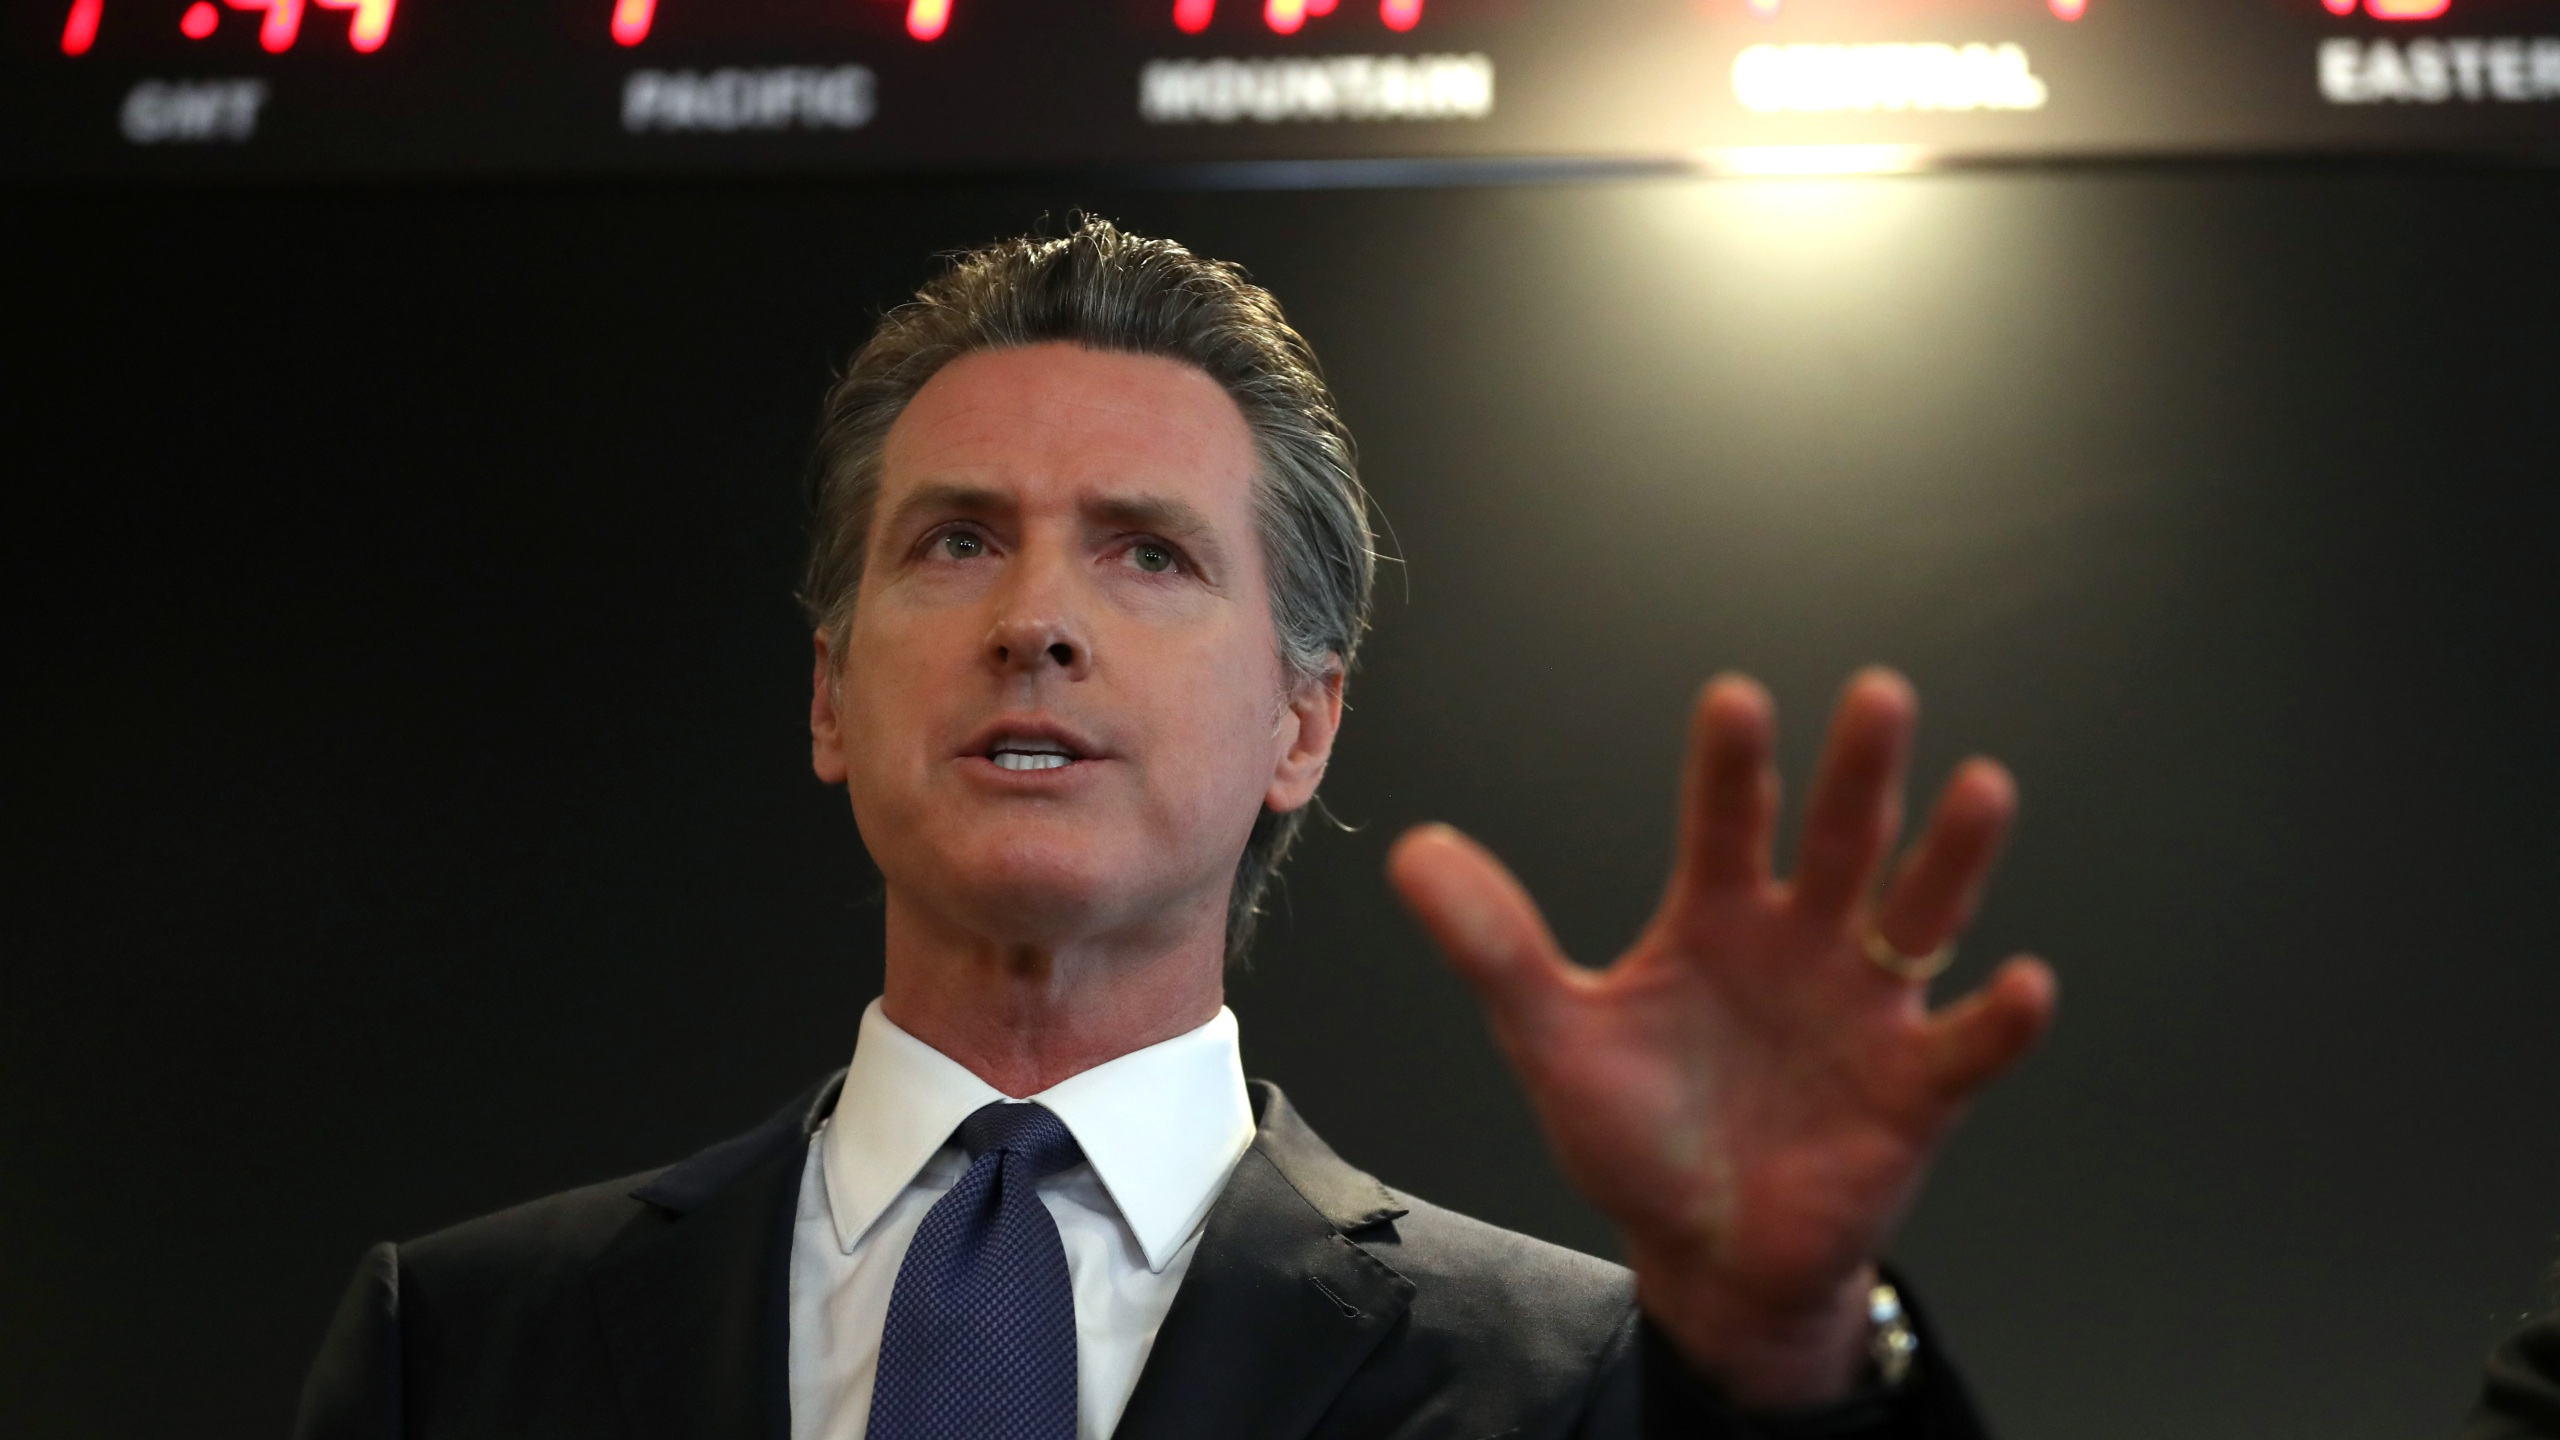 Gov. Gavin Newsom speaks at a news conference in Sacramento on Feb. 27, 2020. (Credit: Justin Sullivan / Getty Images)